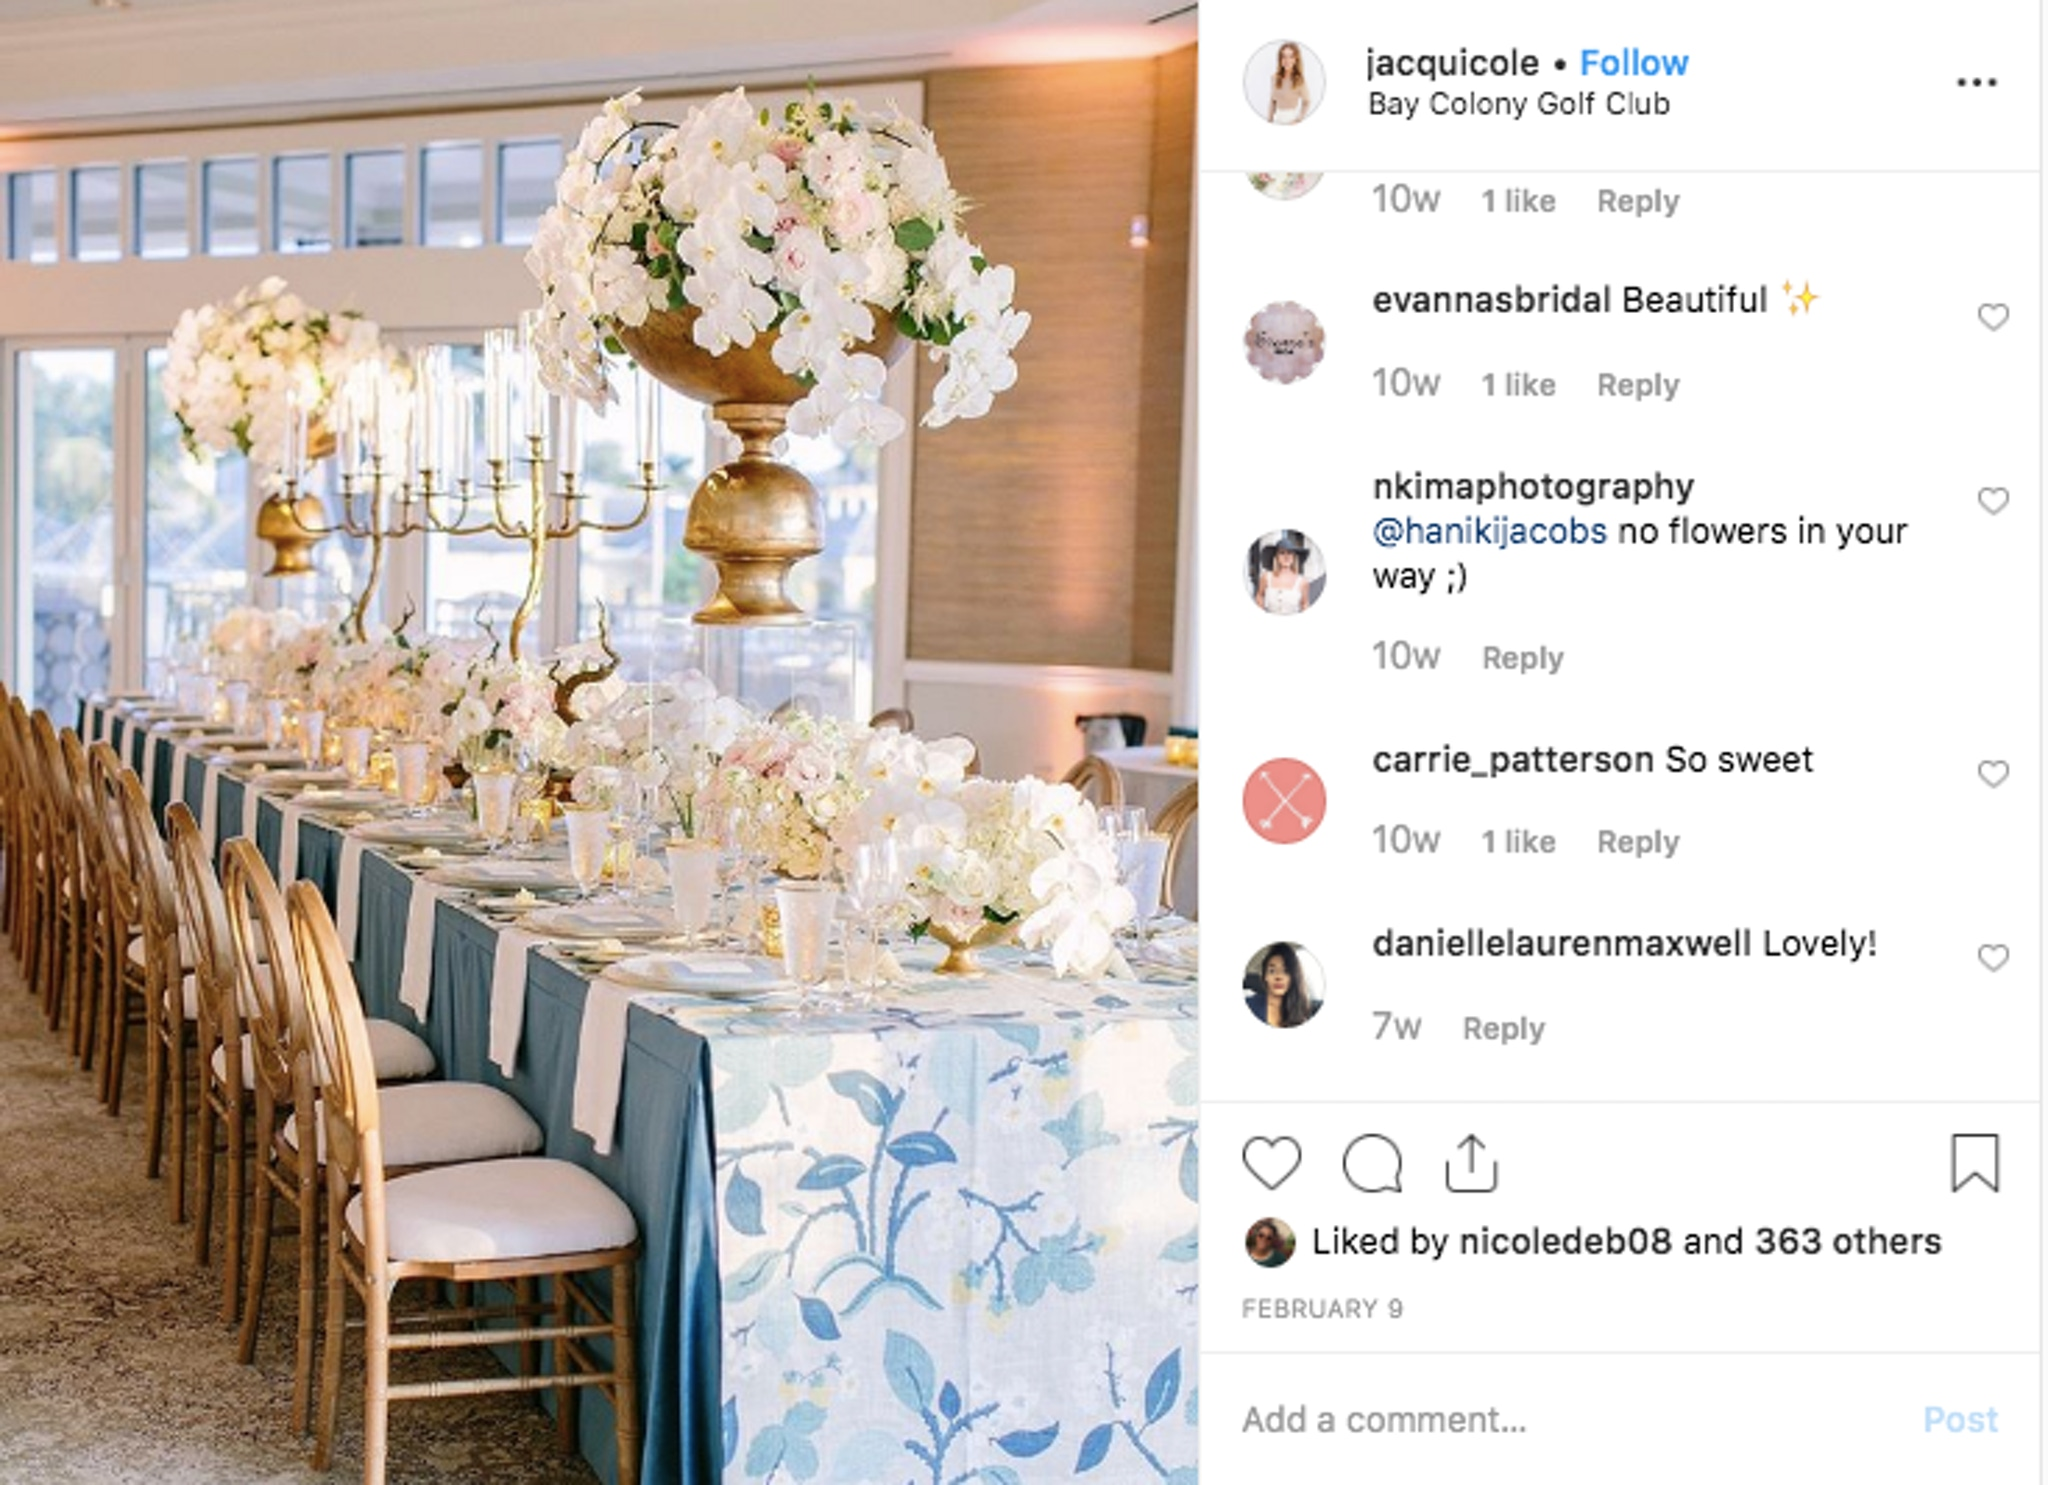 wedding table decor with gold chairs, white floral arrangements and a blue floral table cloth